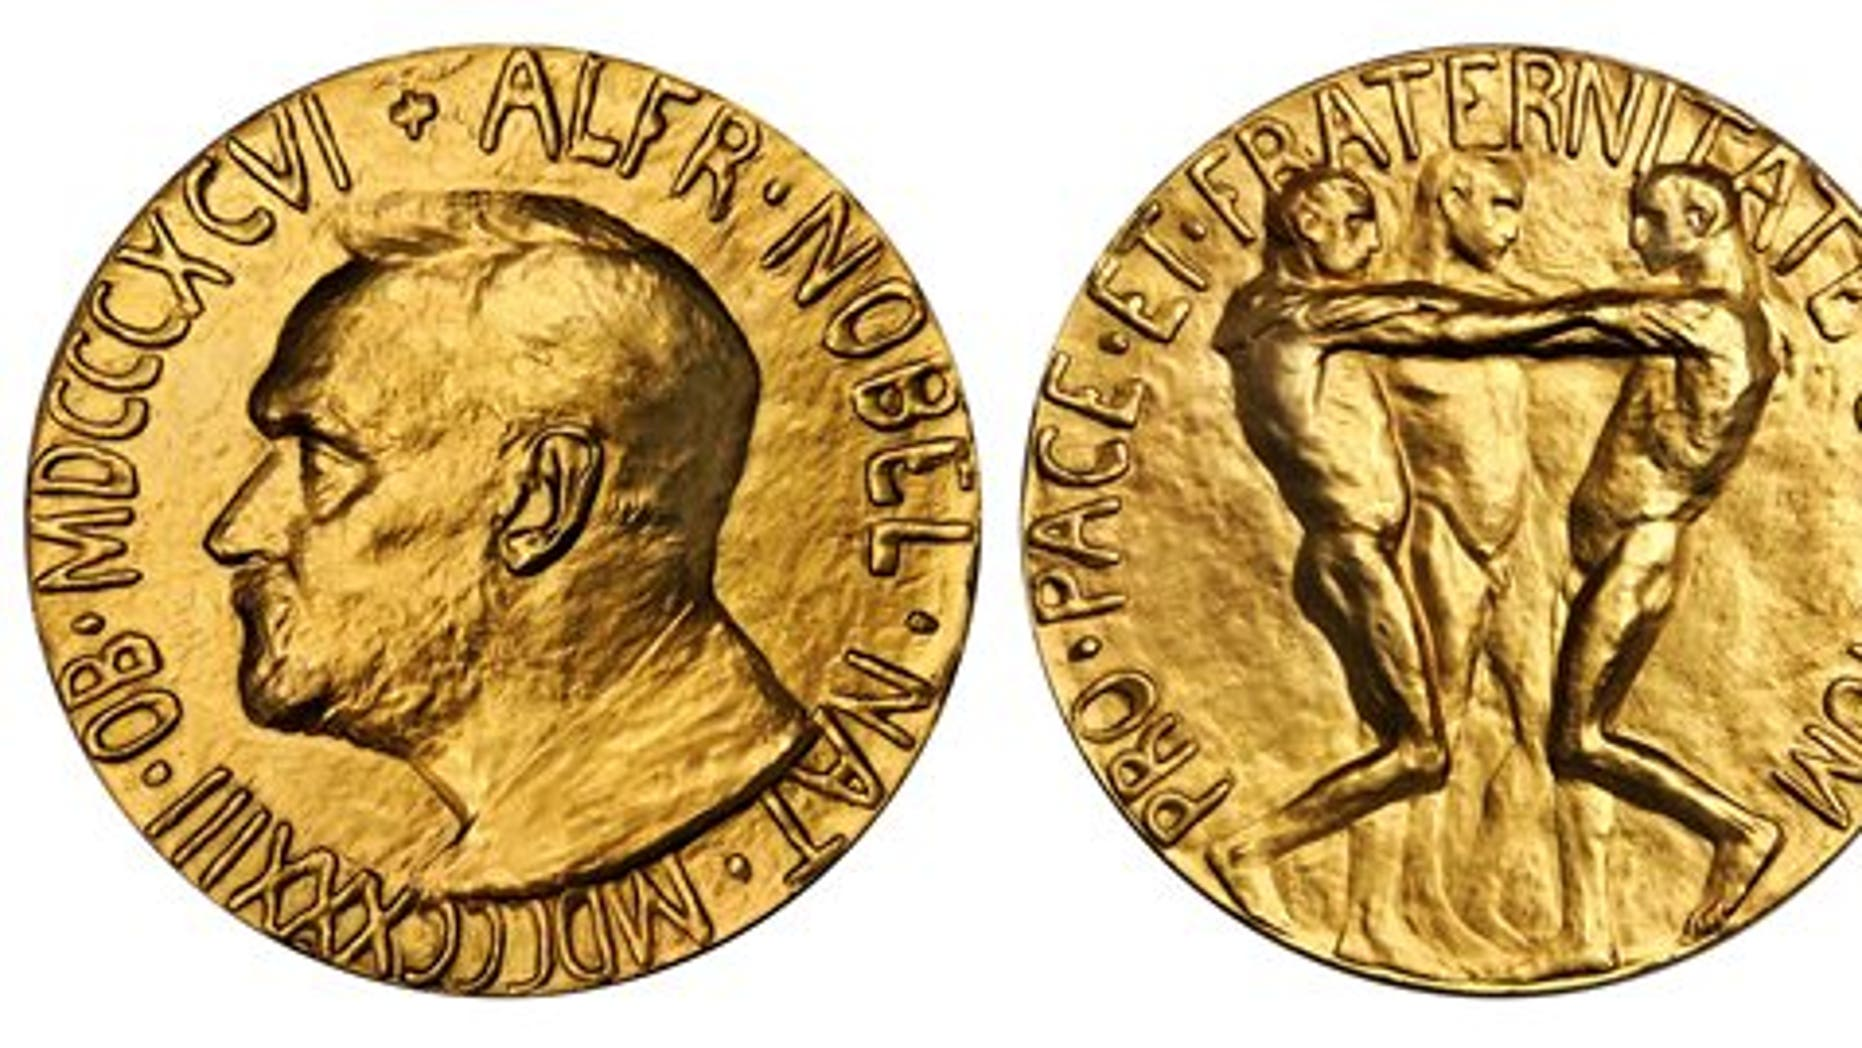 This undated photo provided by Stacks Bowers Galleries shows both sides of a Nobel Peace Prize that was saved from possible destruction for the value of its gold. The 1936 medal is only the second Nobel Peace Prize to come to auction and marked the first time an individual from Latin America was recognized by the prestigious award. The 23-karat relic is being offered for sale in Baltimore on March 27, 2014, by the New York-based Stacks Bowers Galleries. (AP Photo/Stacks Bowers Galleries)